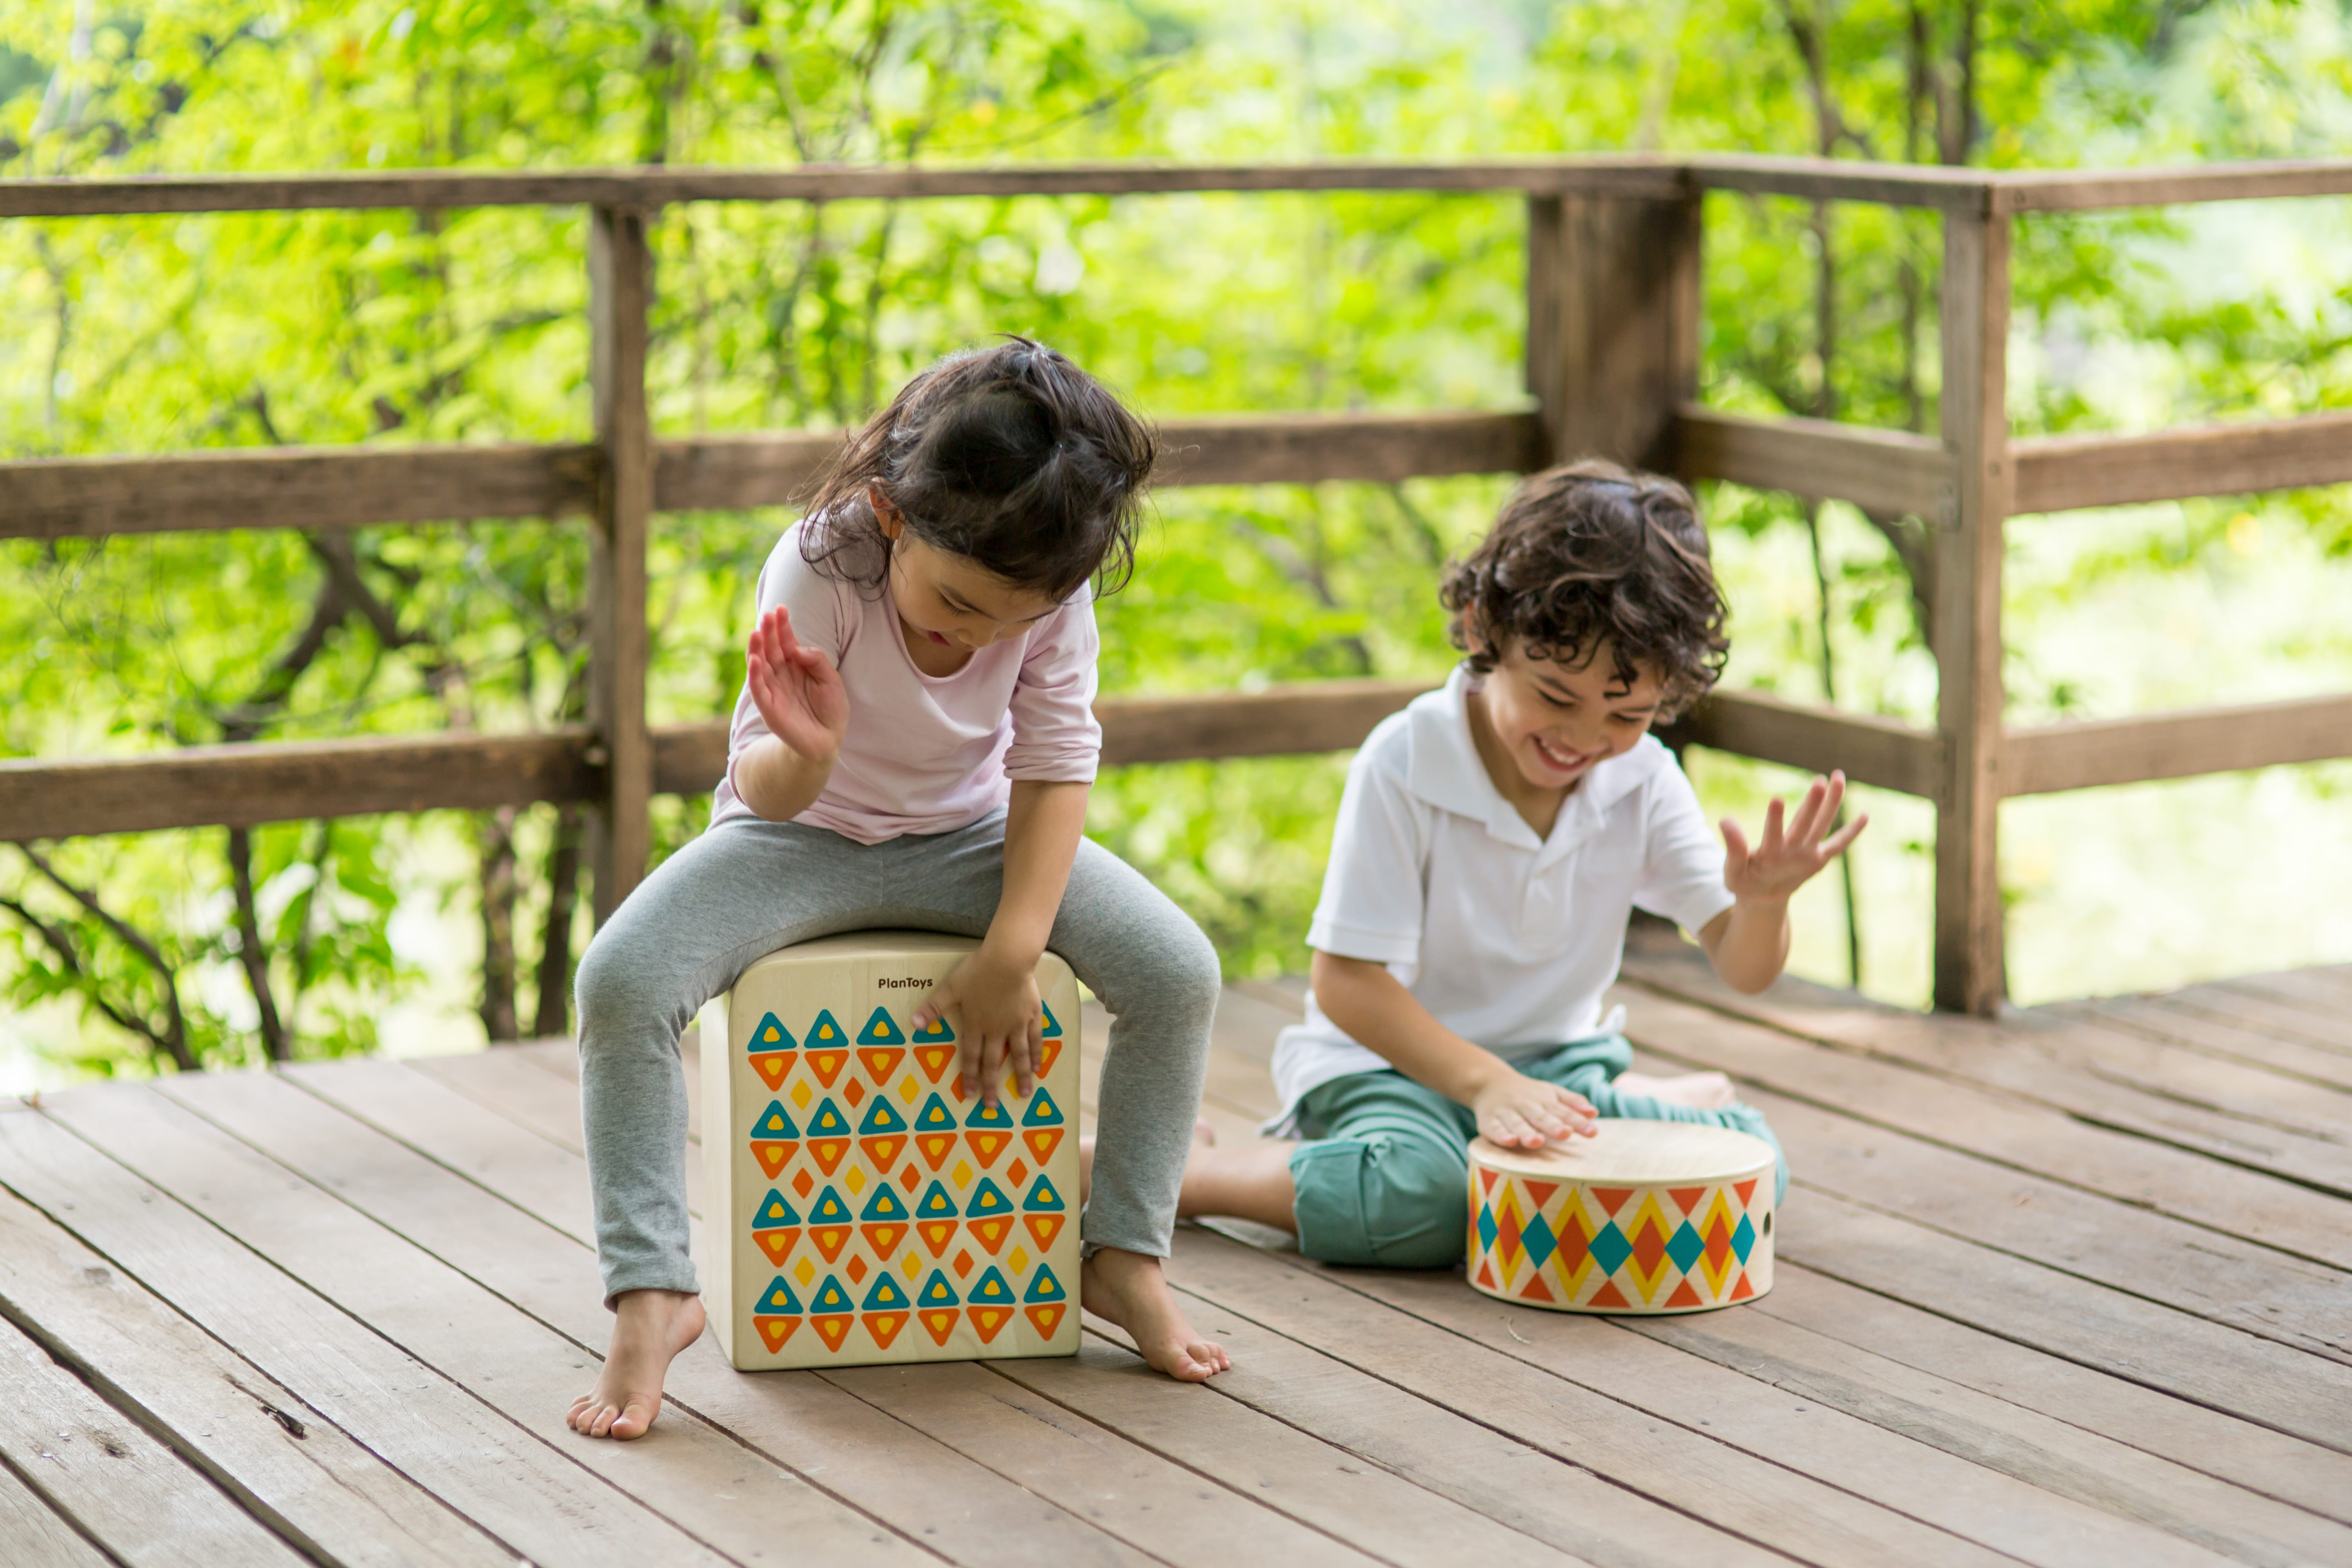 6423_PlanToys_RHYTHM_BOX_Music_Musical_Auditory_Concentration_Emotion_Coordination_Creative_3yrs_Wooden_toys_Education_toys_Safety_Toys_Non-toxic_5.jpg